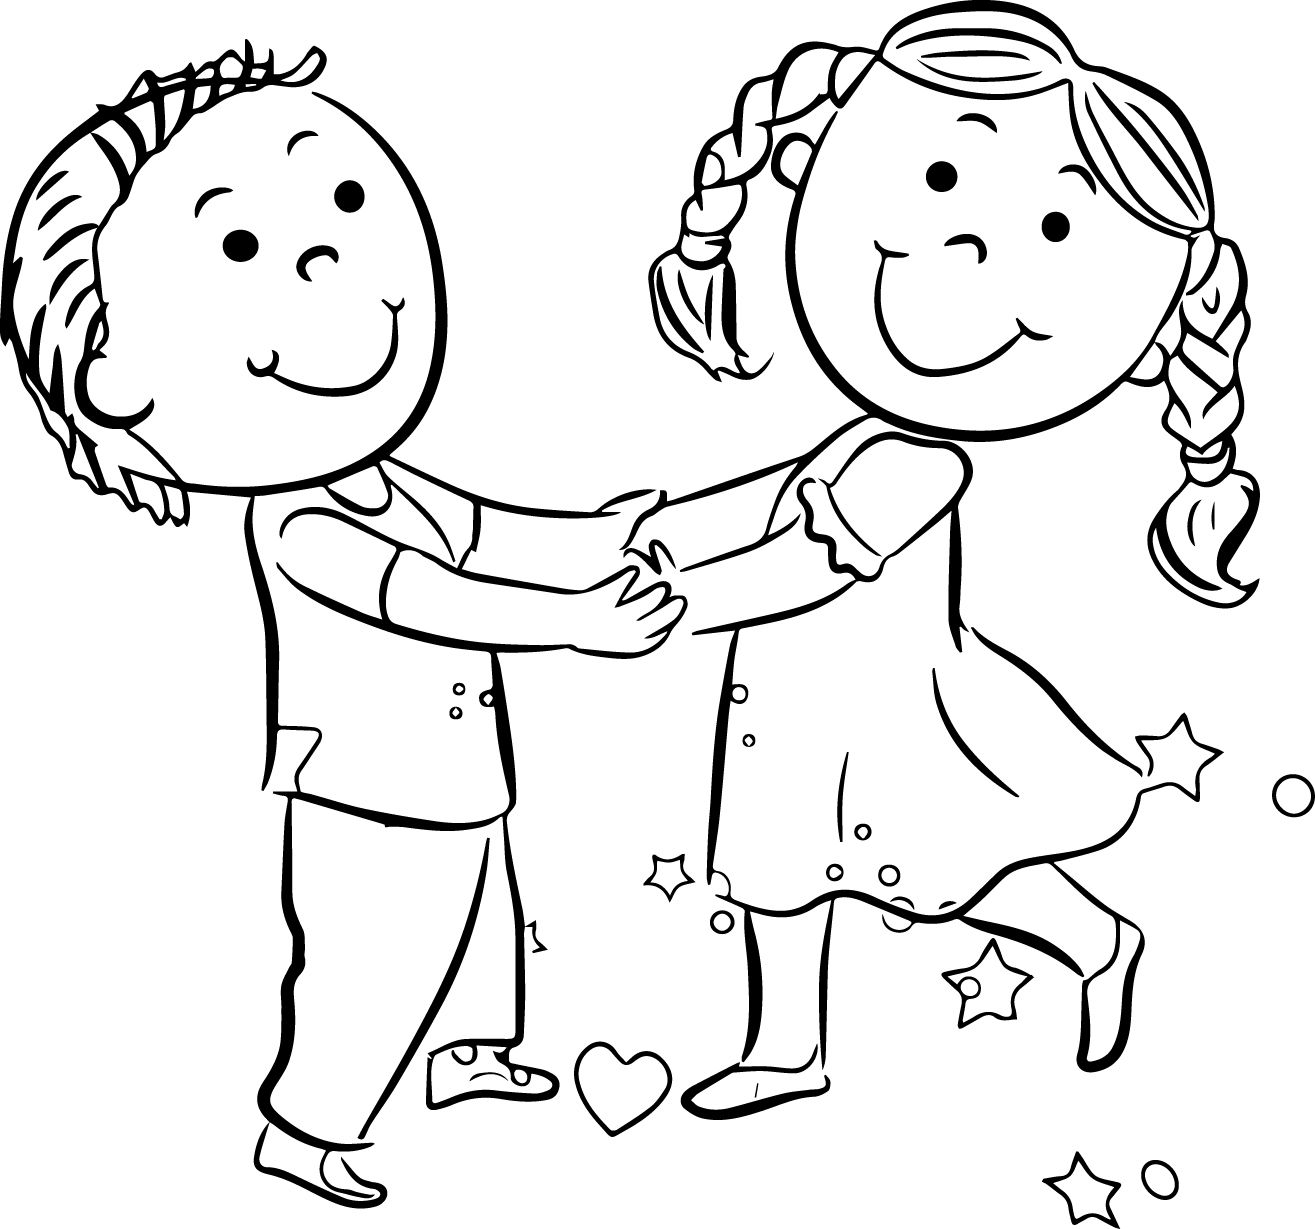 coloring pages kids boys - photo#8